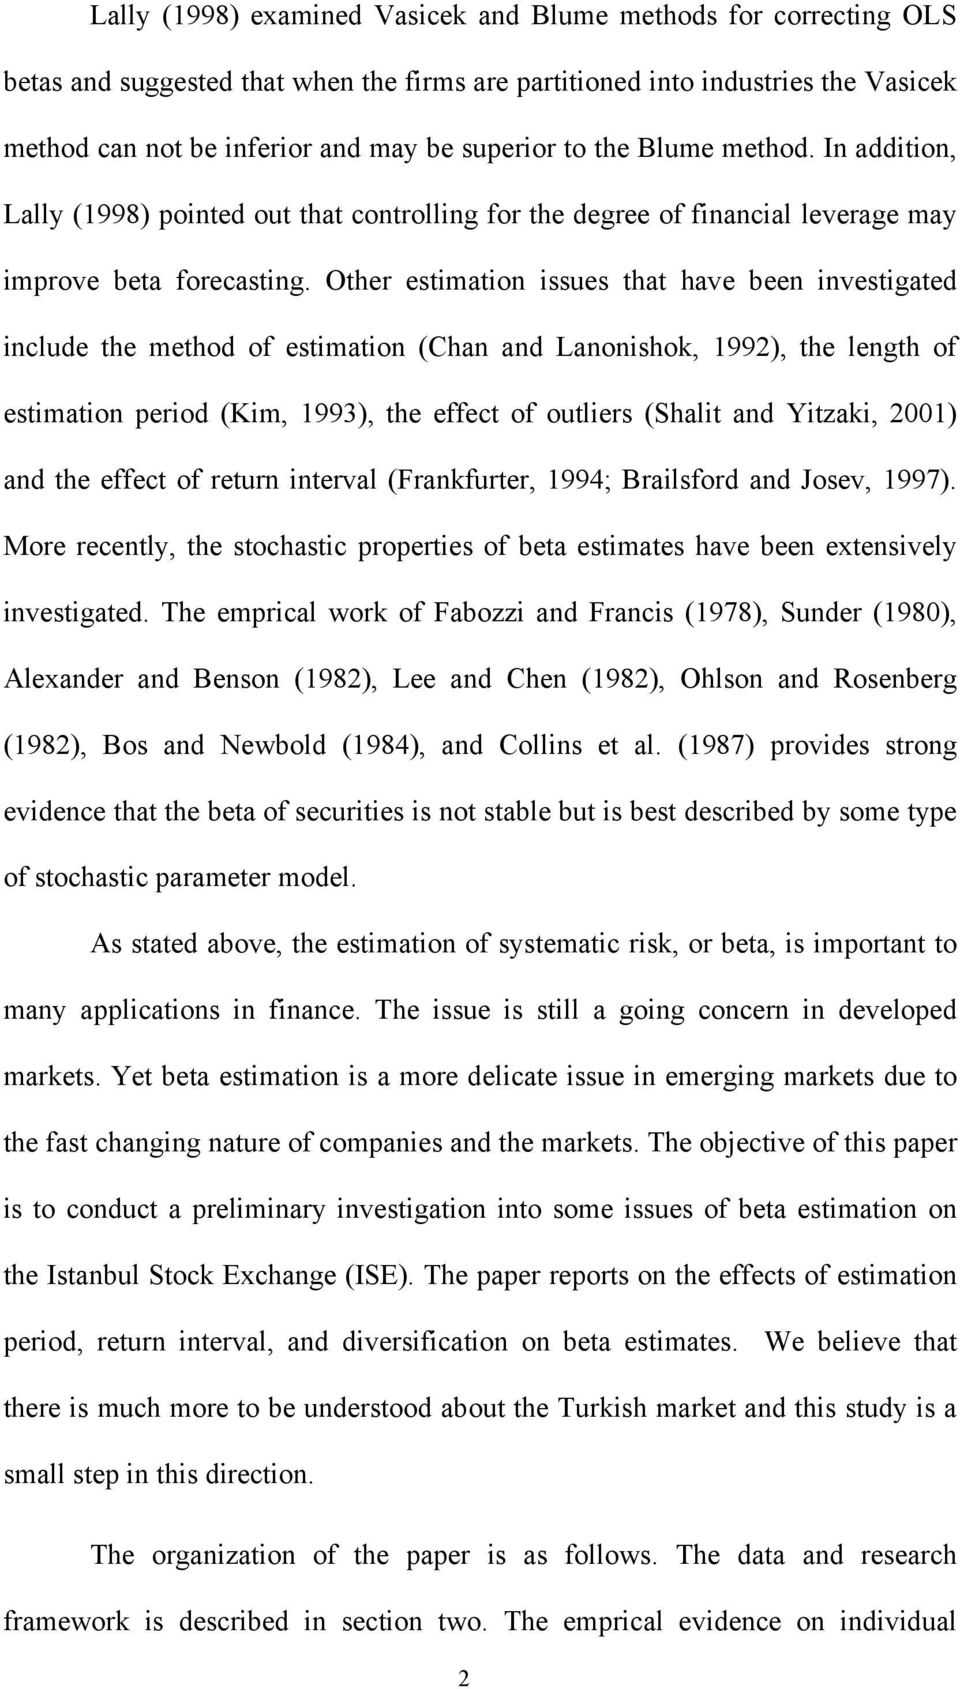 Other estimation issues that have been investigated include the method of estimation (Chan and Lanonishok, 1992), the length of estimation period (Kim, 1993), the effect of outliers (Shalit and